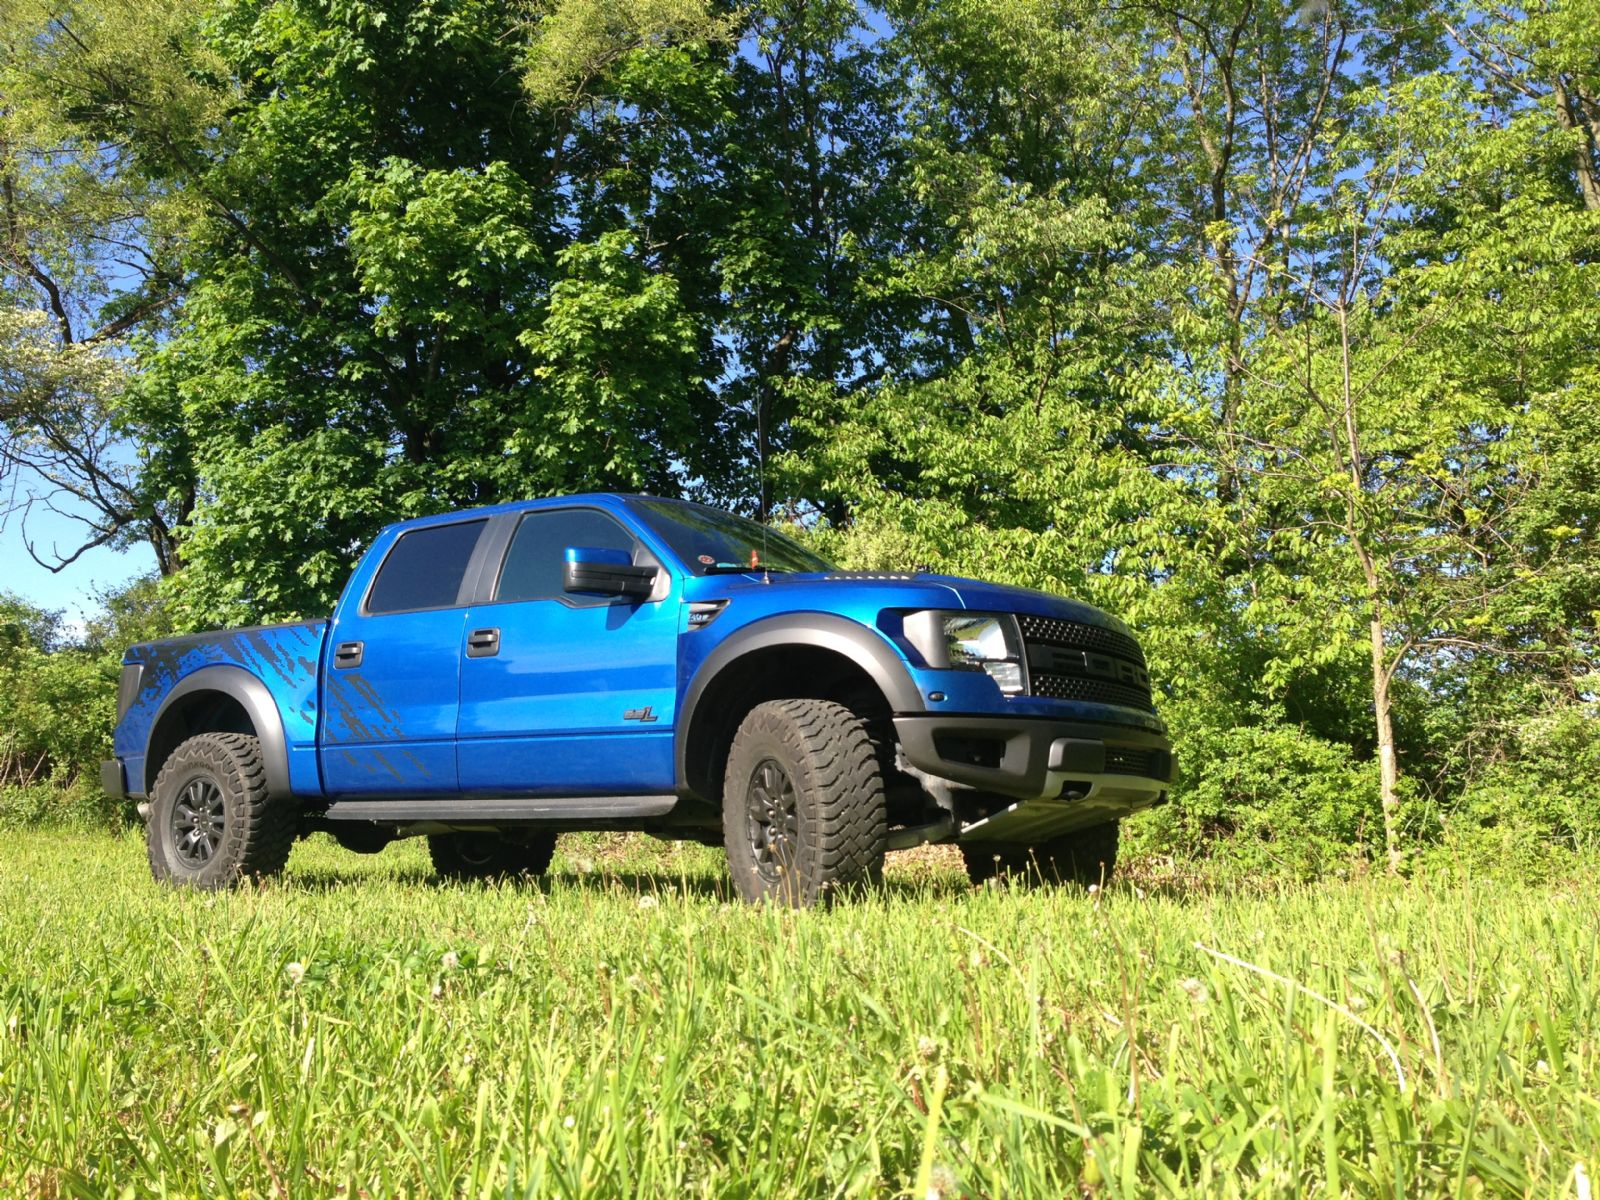 2011 ford raptor f150 svt raptor for sale schuylkill haven pennsylvania. Black Bedroom Furniture Sets. Home Design Ideas